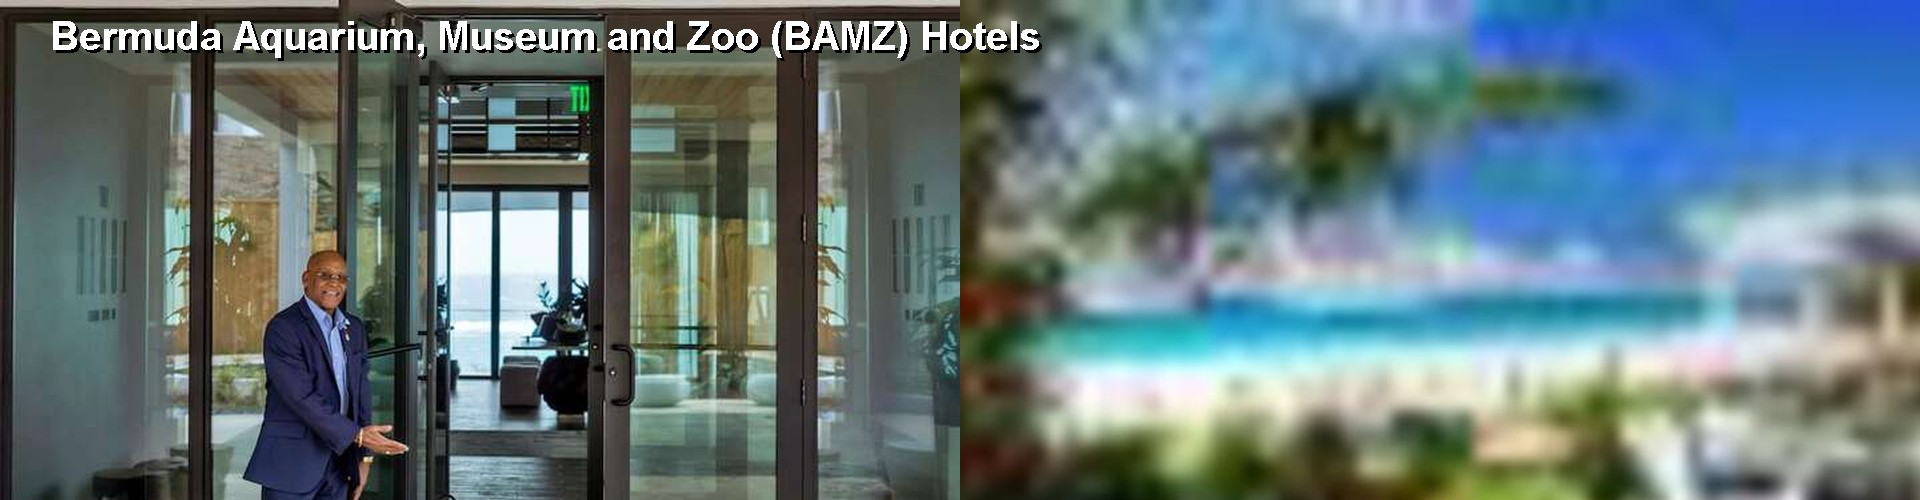 5 Best Hotels near Bermuda Aquarium, Museum and Zoo (BAMZ)